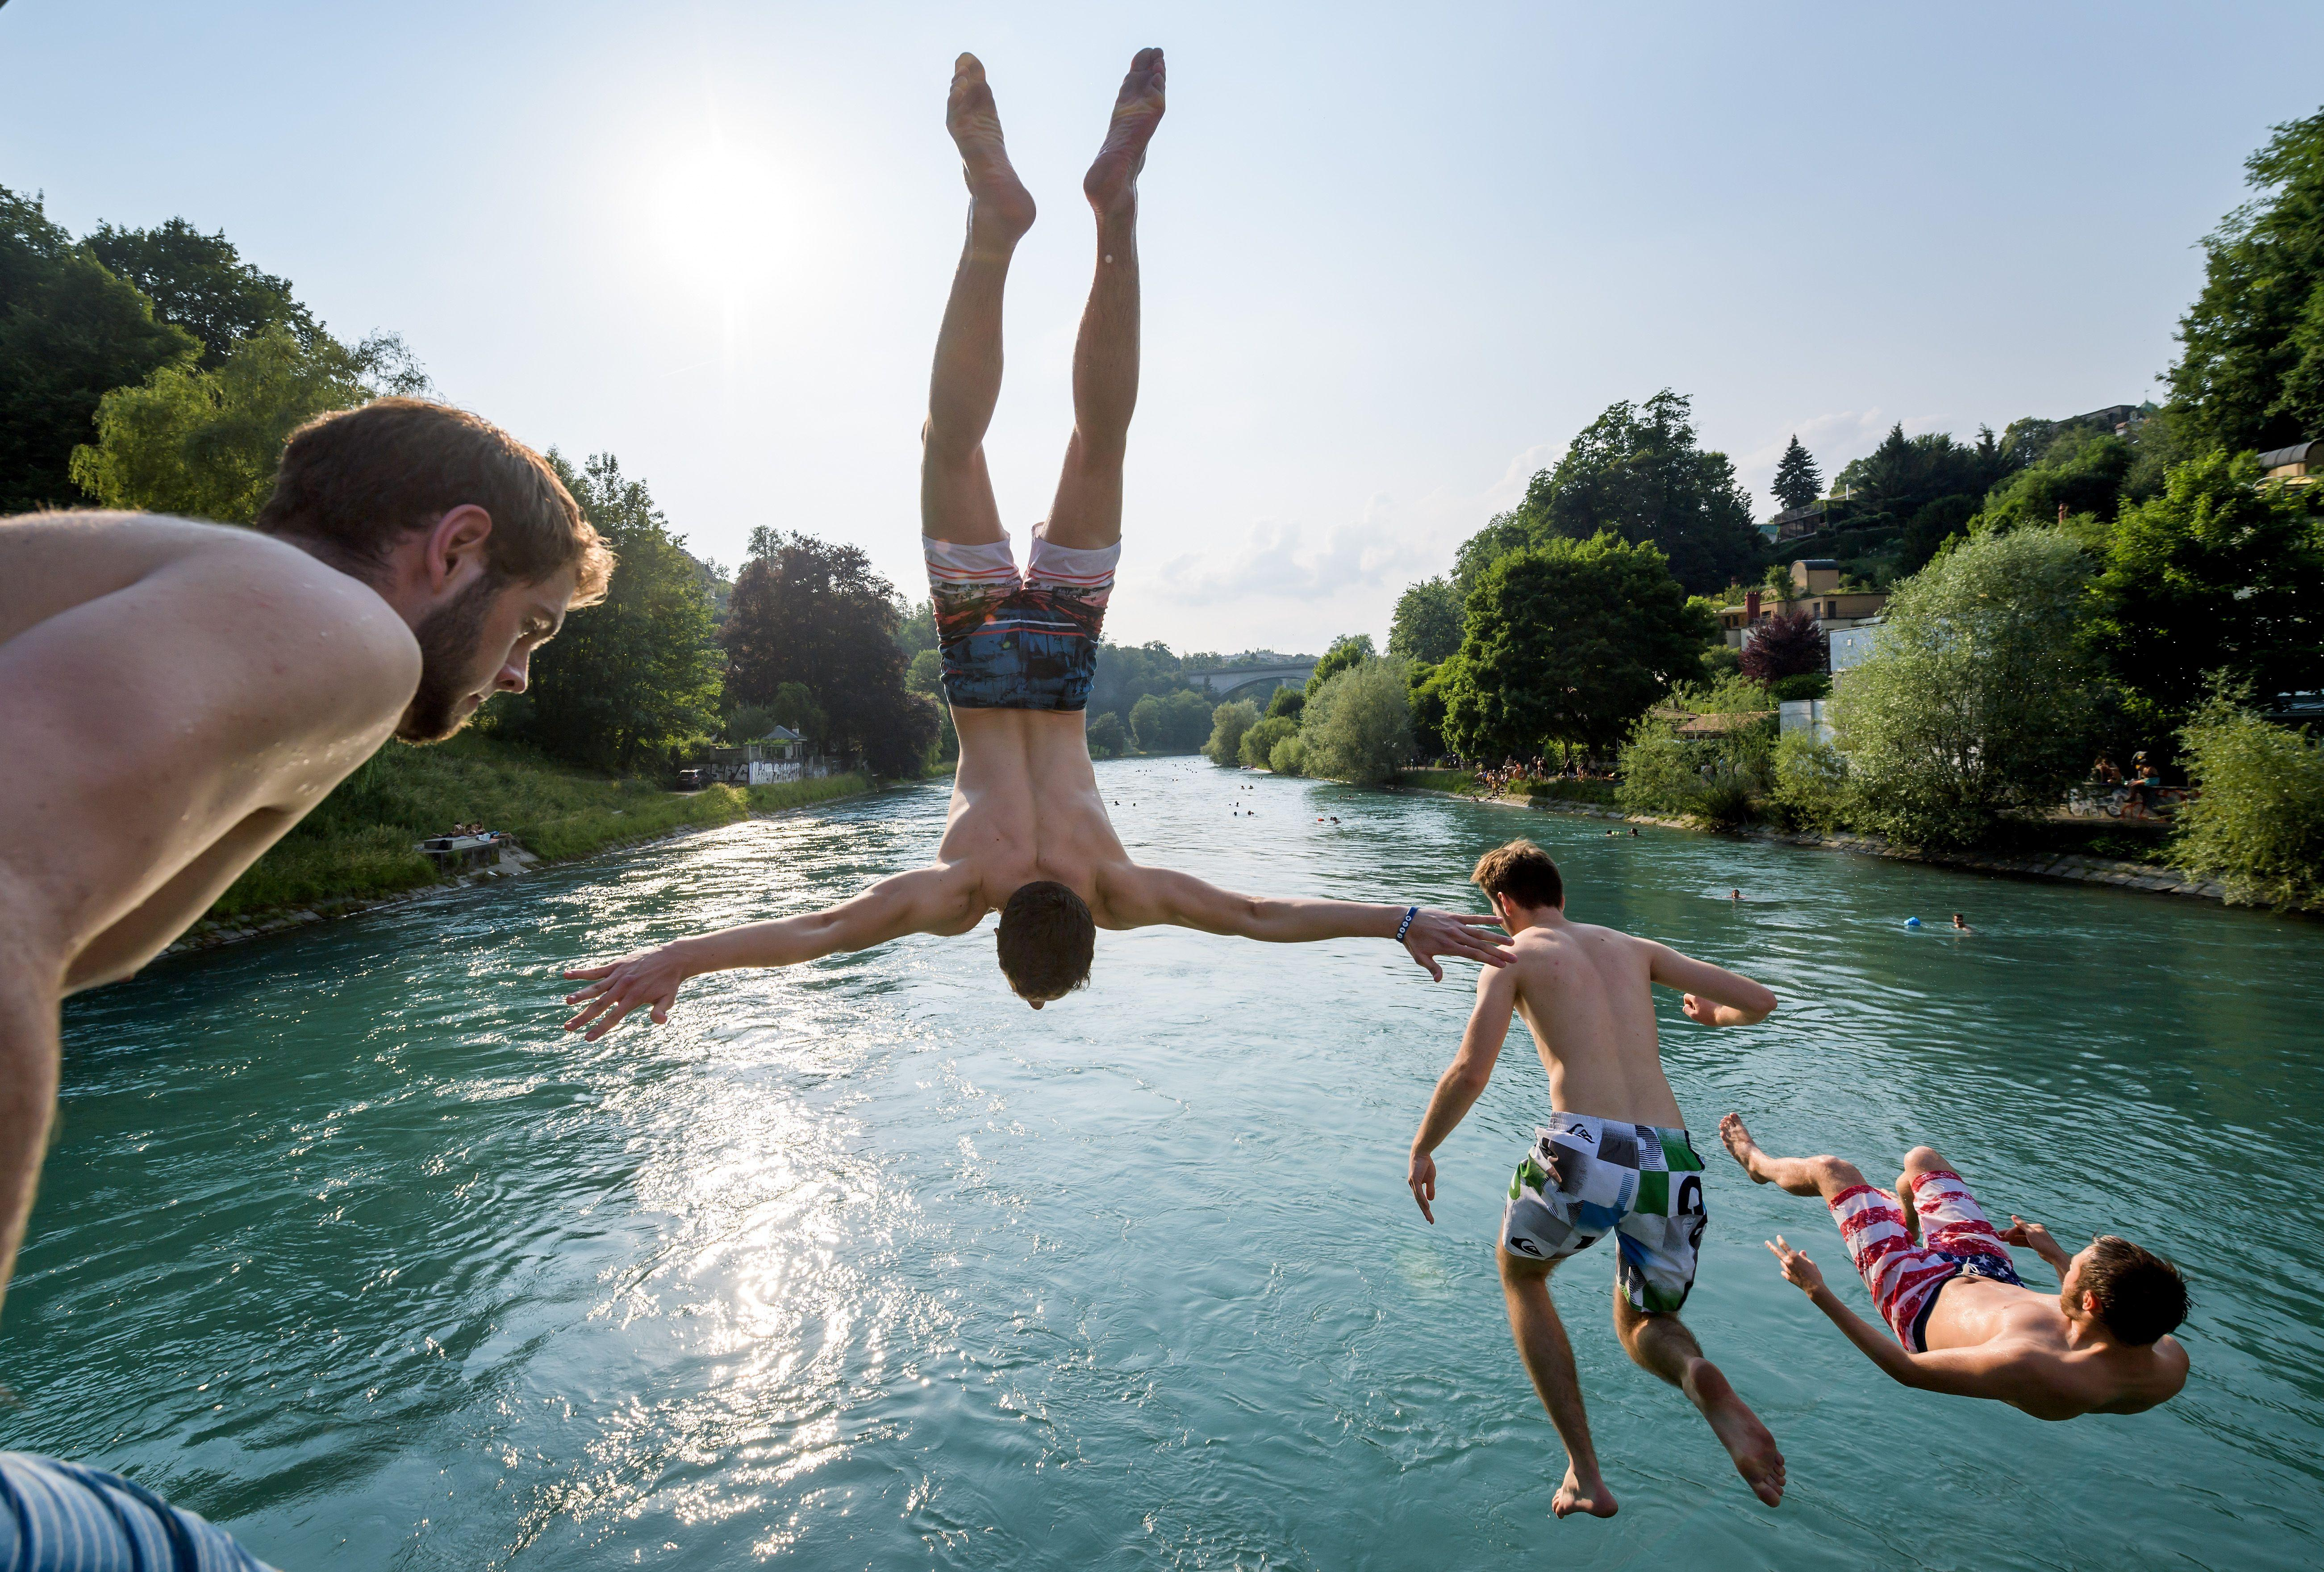 A local's guide to Berne, Switzerland: 10 top tips